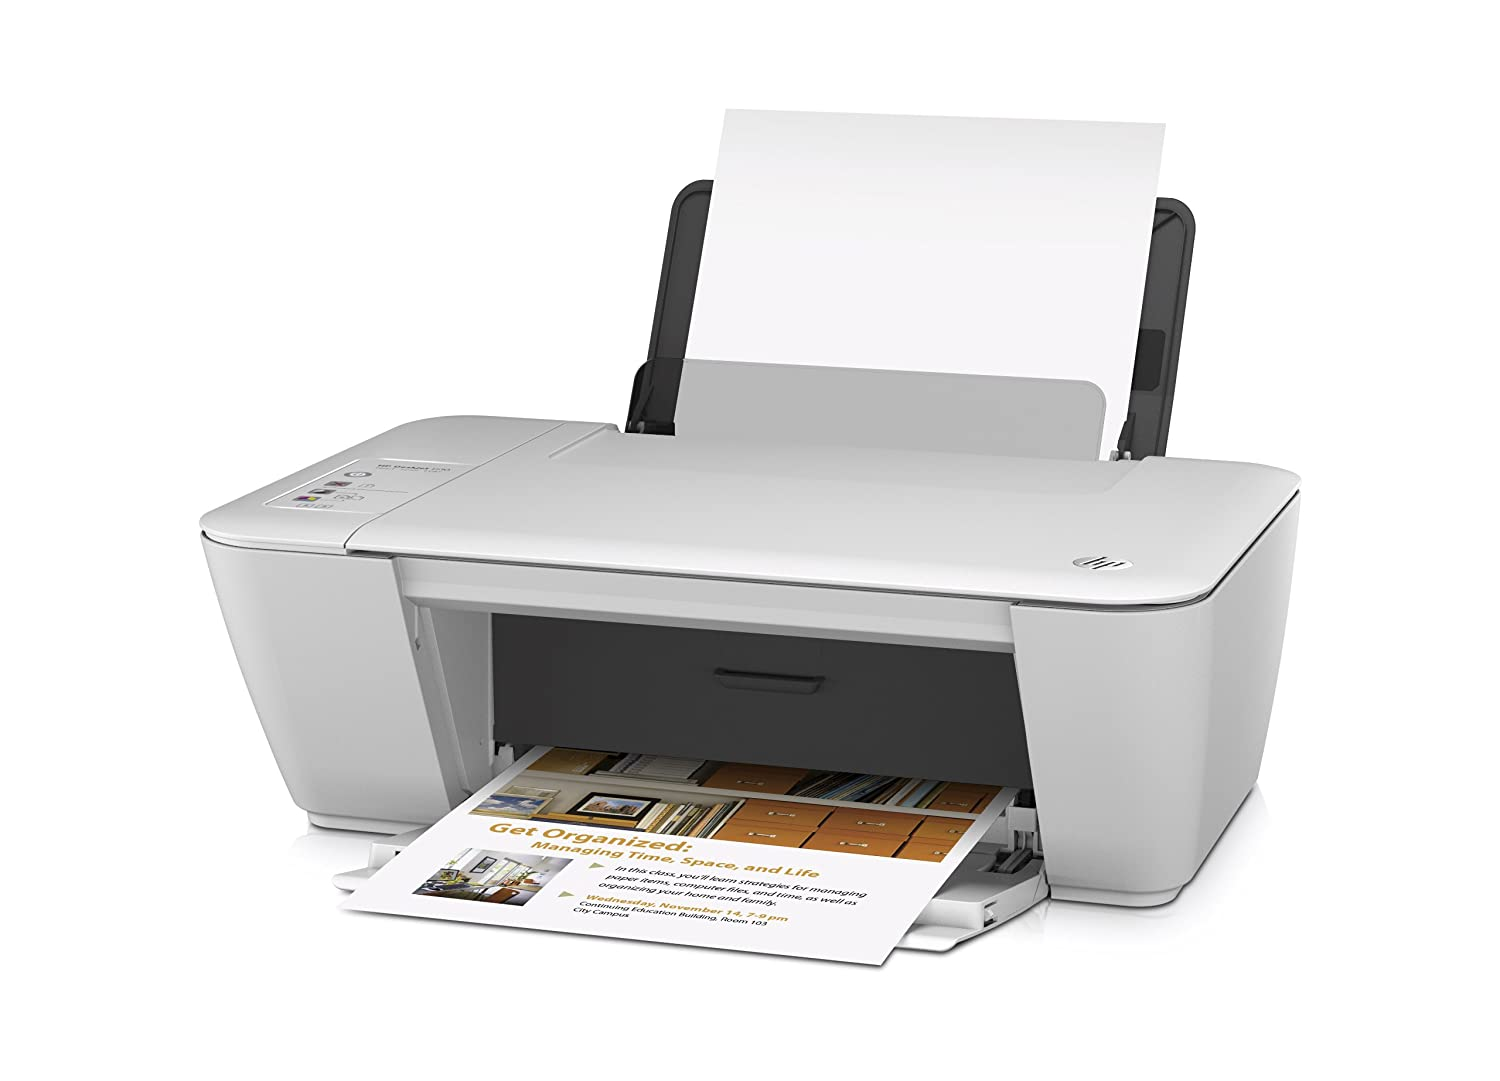 Amazon.com: HP Deskjet 1512 Inkjet All-in-One Printer ...